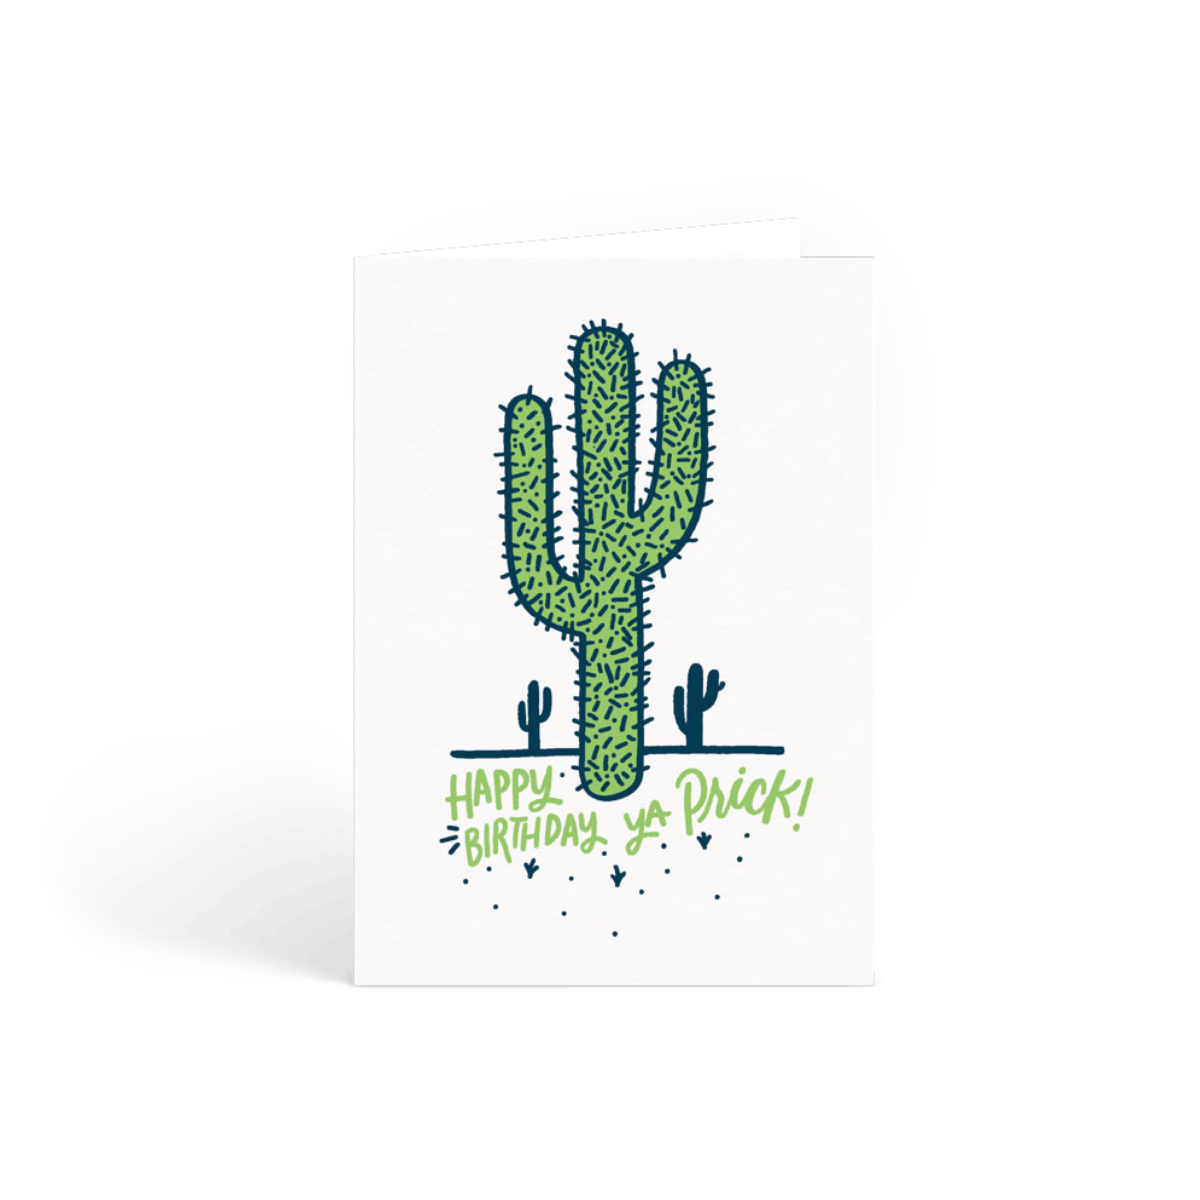 Https%3a%2f%2fwww.papier.com%2fproduct image%2f16252%2f2%2fbirthday cactus 4297 front 1484669304.png?ixlib=rb 1.1